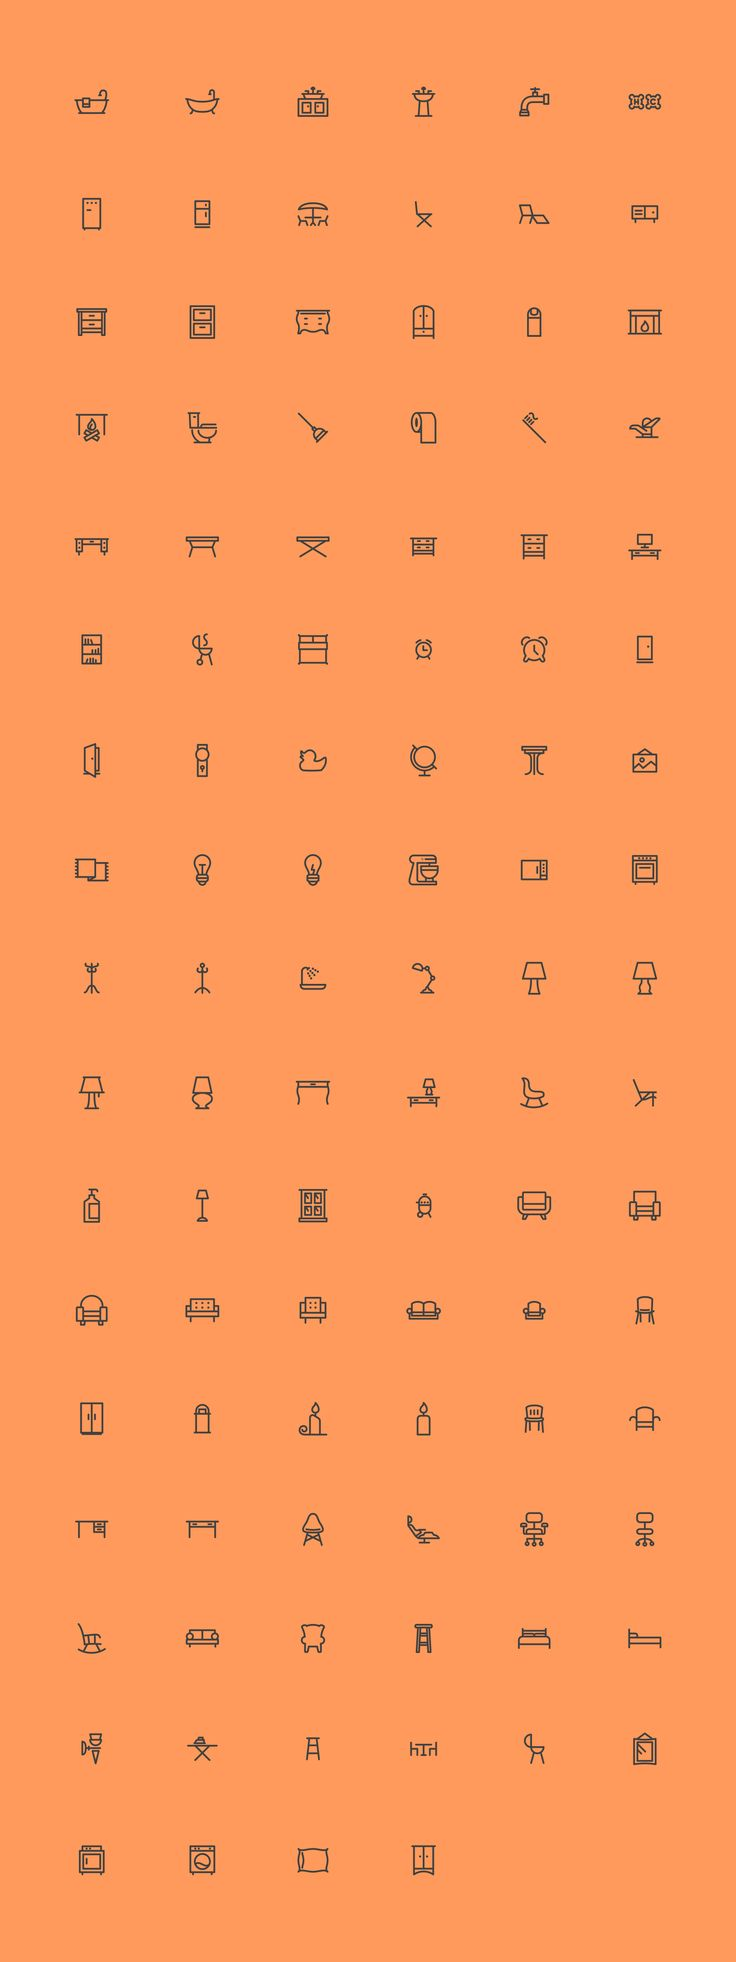 These vector icons are perfect for use in your next app, UI, and branding project.